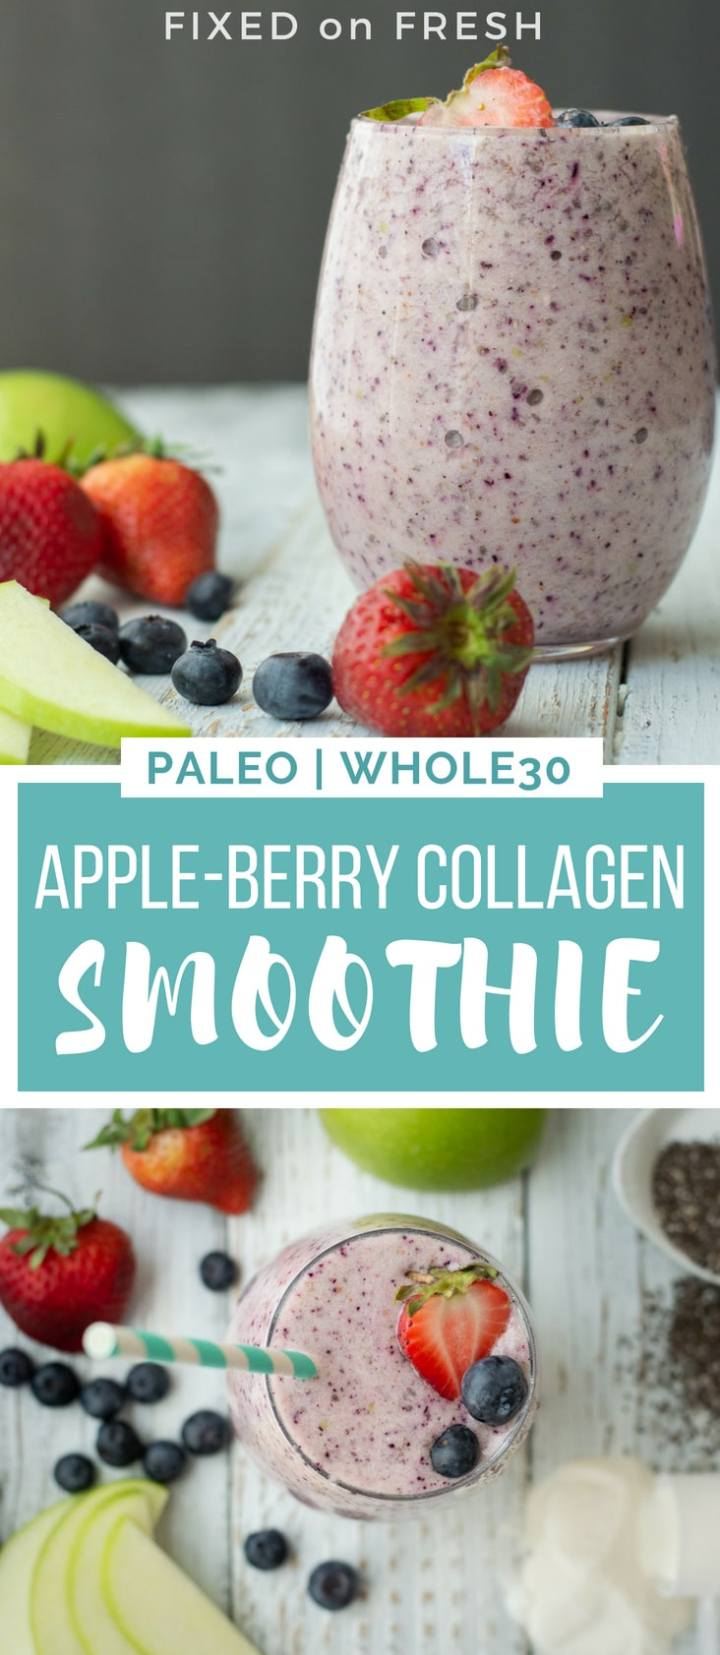 This Apple Berry Collagen Smoothie is a high fiber, high protein breakfast or snack on the go. The collagen protein is amazing for hair, skin, nails and joints.